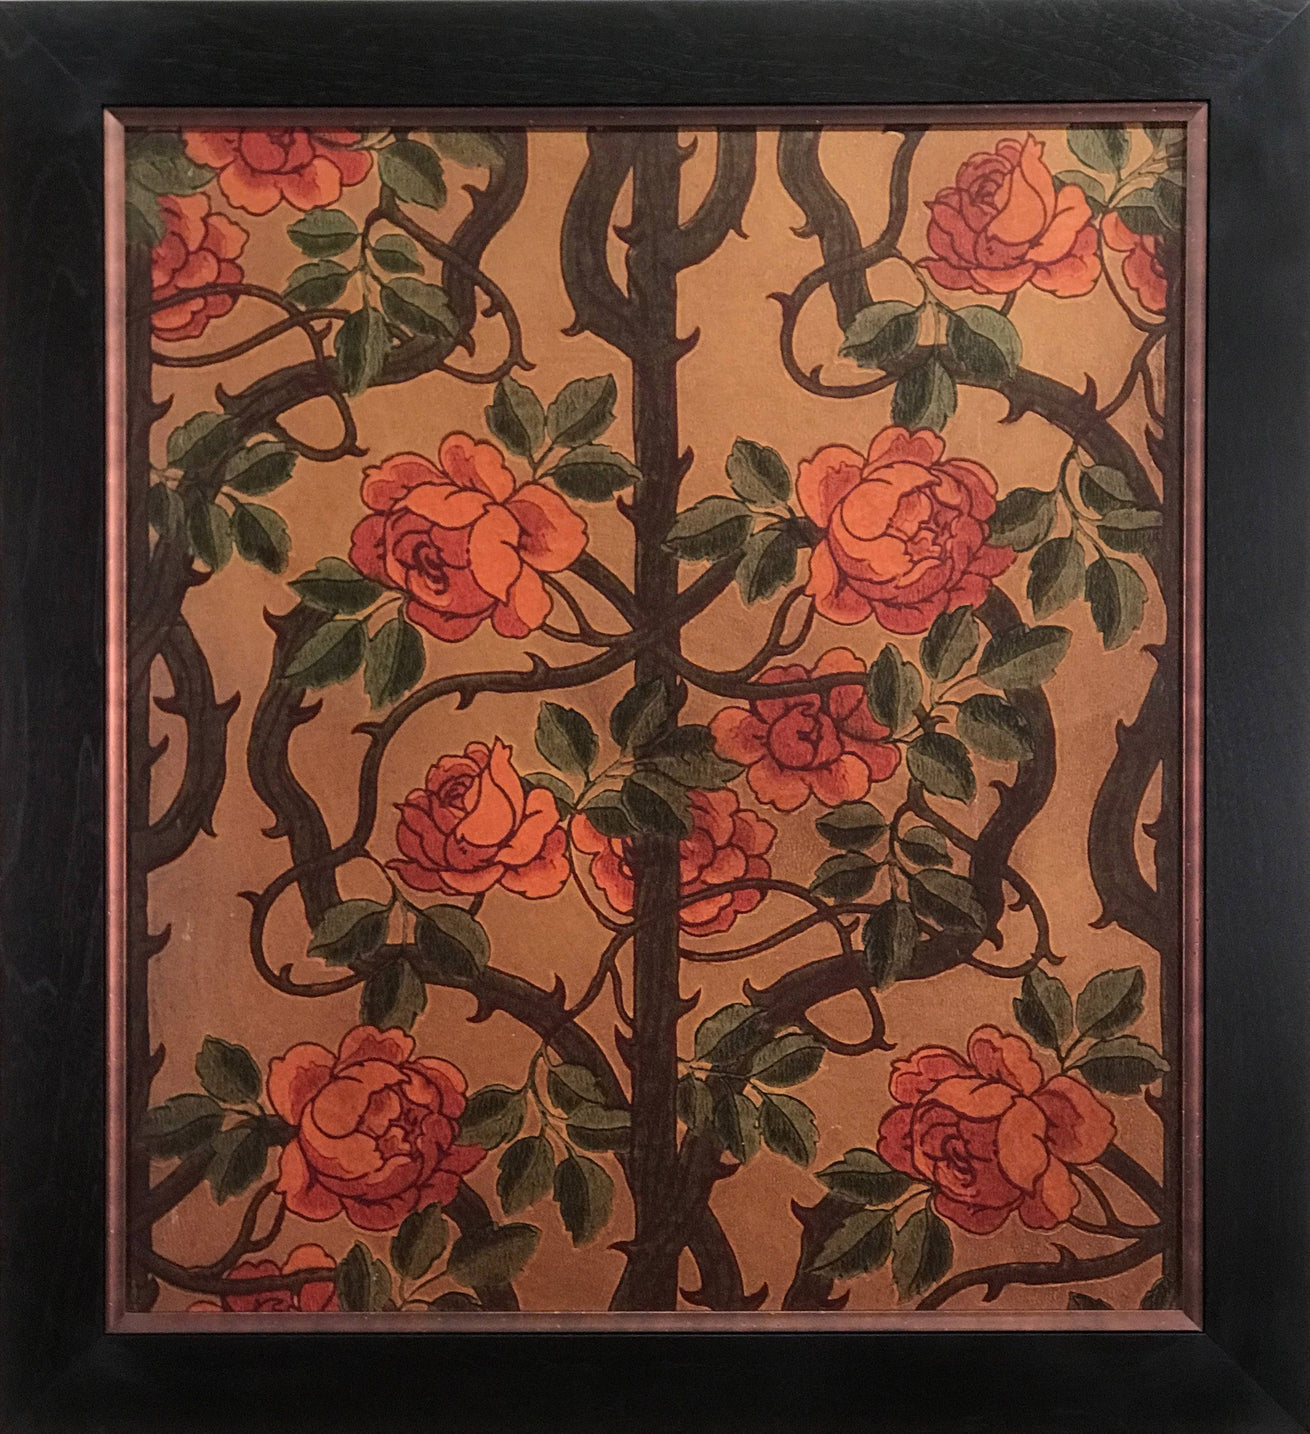 Antique Gilt Climbing Rose Vine - Framed Antique Wallpaper Art-Sold